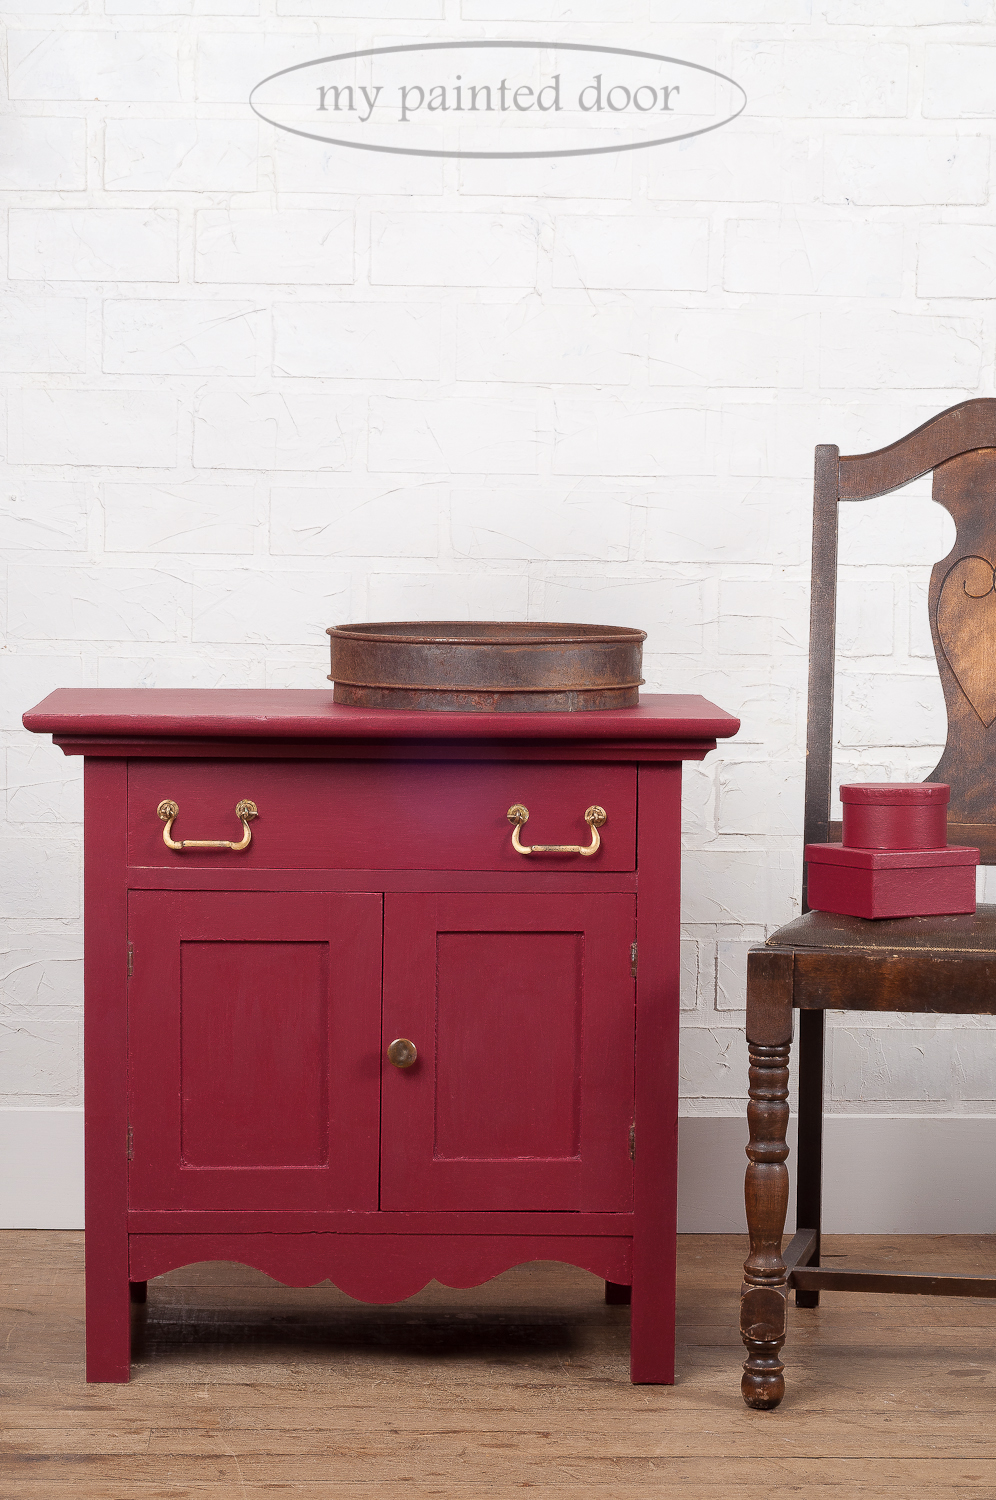 Washstand painted in Cranberry Fusion Mineral Paint colour. Cranberry is a natural luscious burgundy red reminiscent of cranberries.